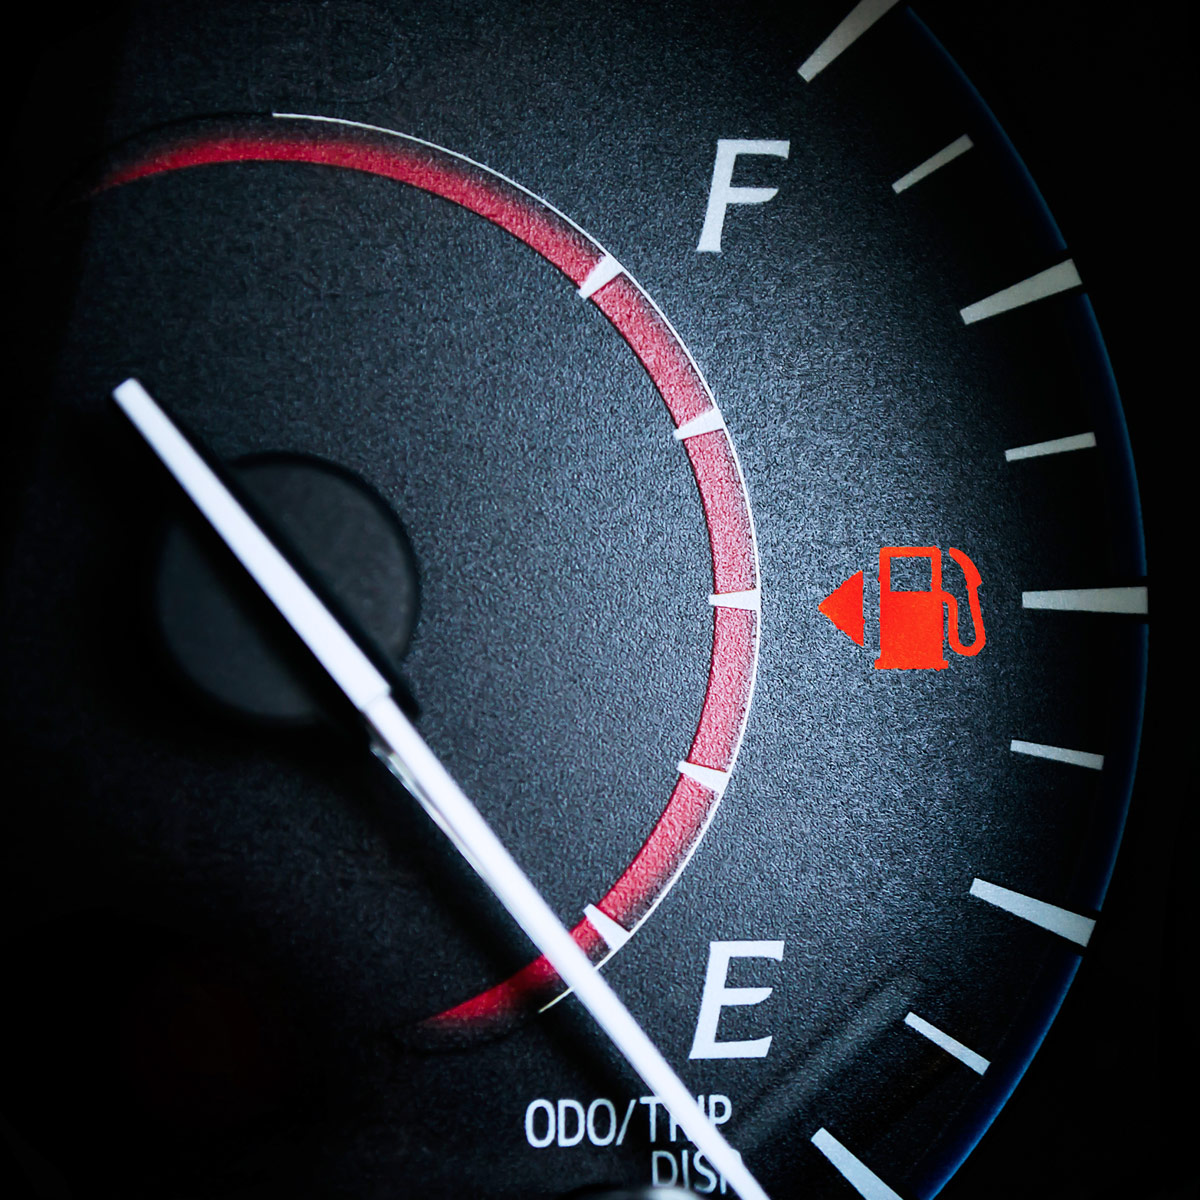 Fuel Gauge Sender Replacement Costs Repairs Autoguru Toyota Kluger Fuse Box Location